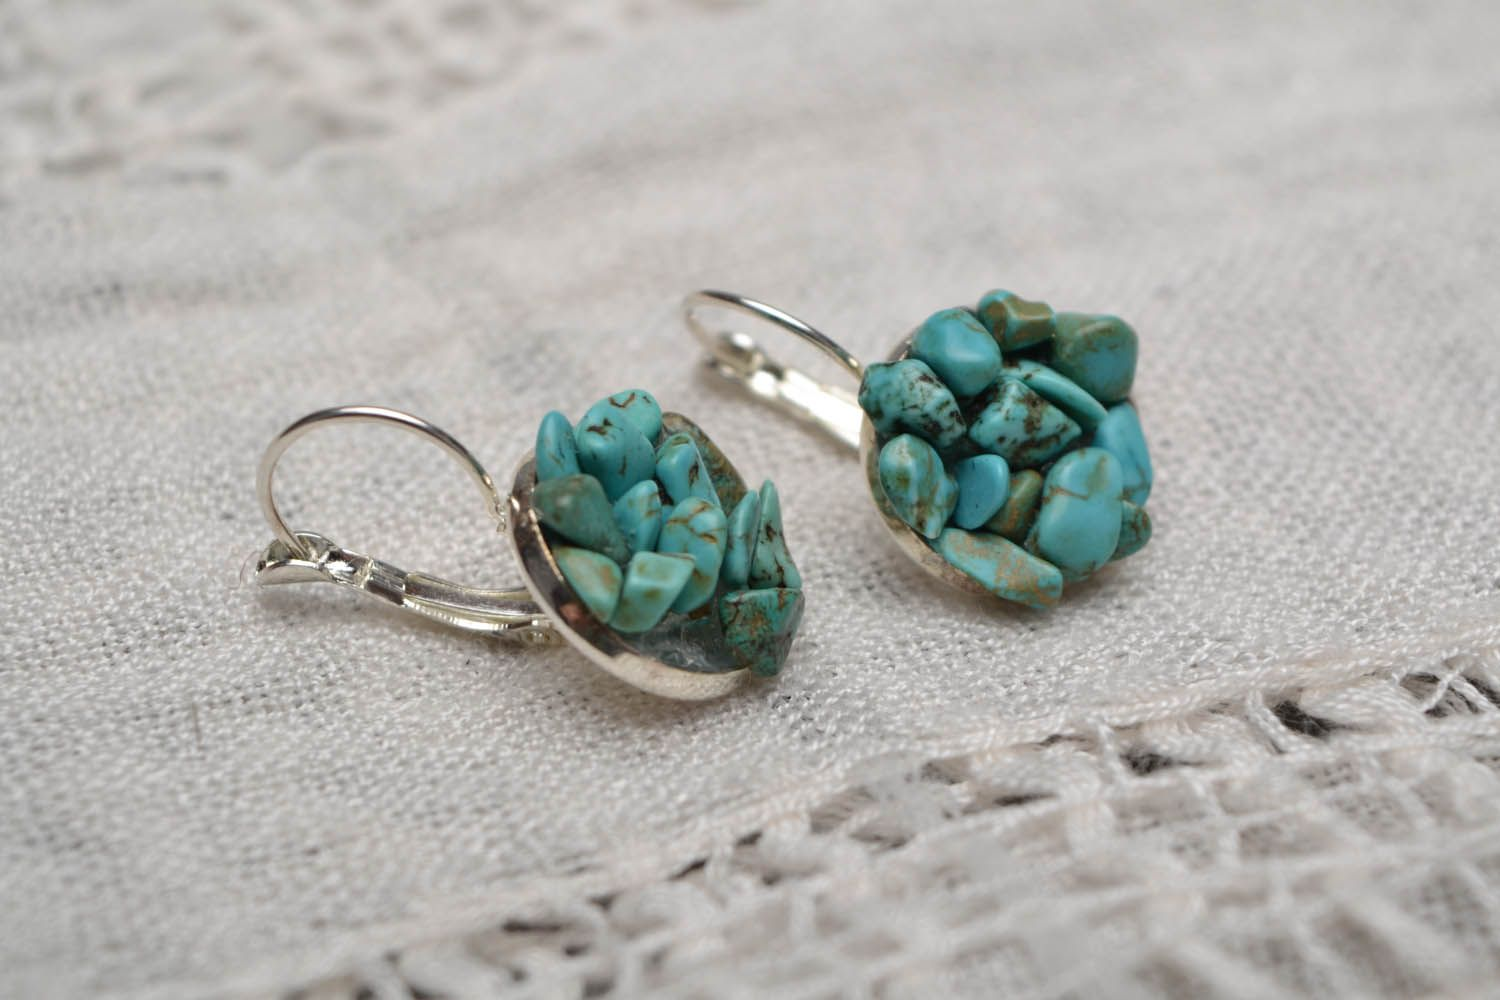 Handmade turquoise earrings photo 1